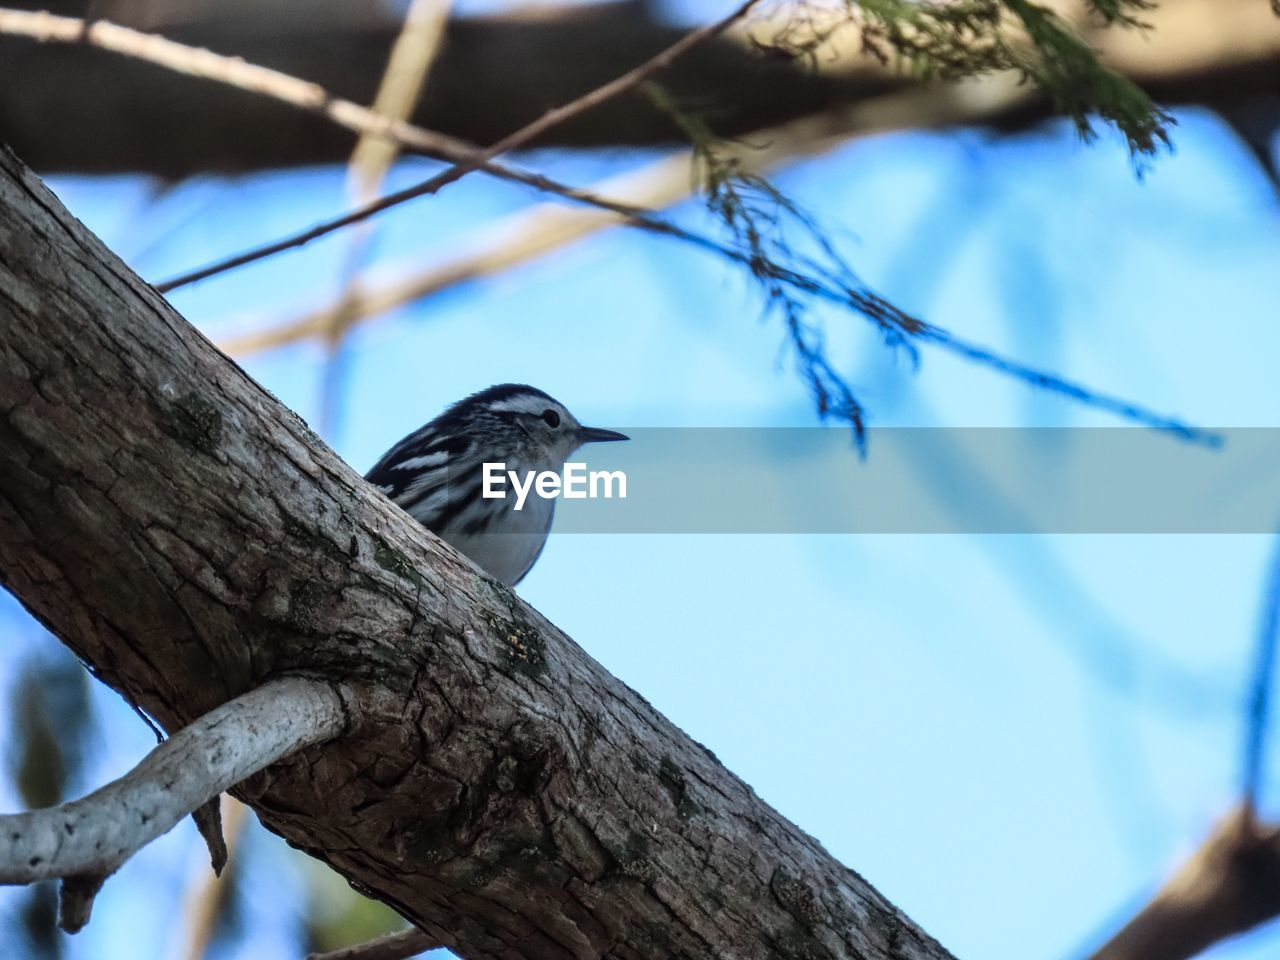 vertebrate, bird, animal, animal wildlife, animal themes, animals in the wild, tree, branch, perching, focus on foreground, one animal, low angle view, no people, plant, day, nature, blue, wood - material, outdoors, sky